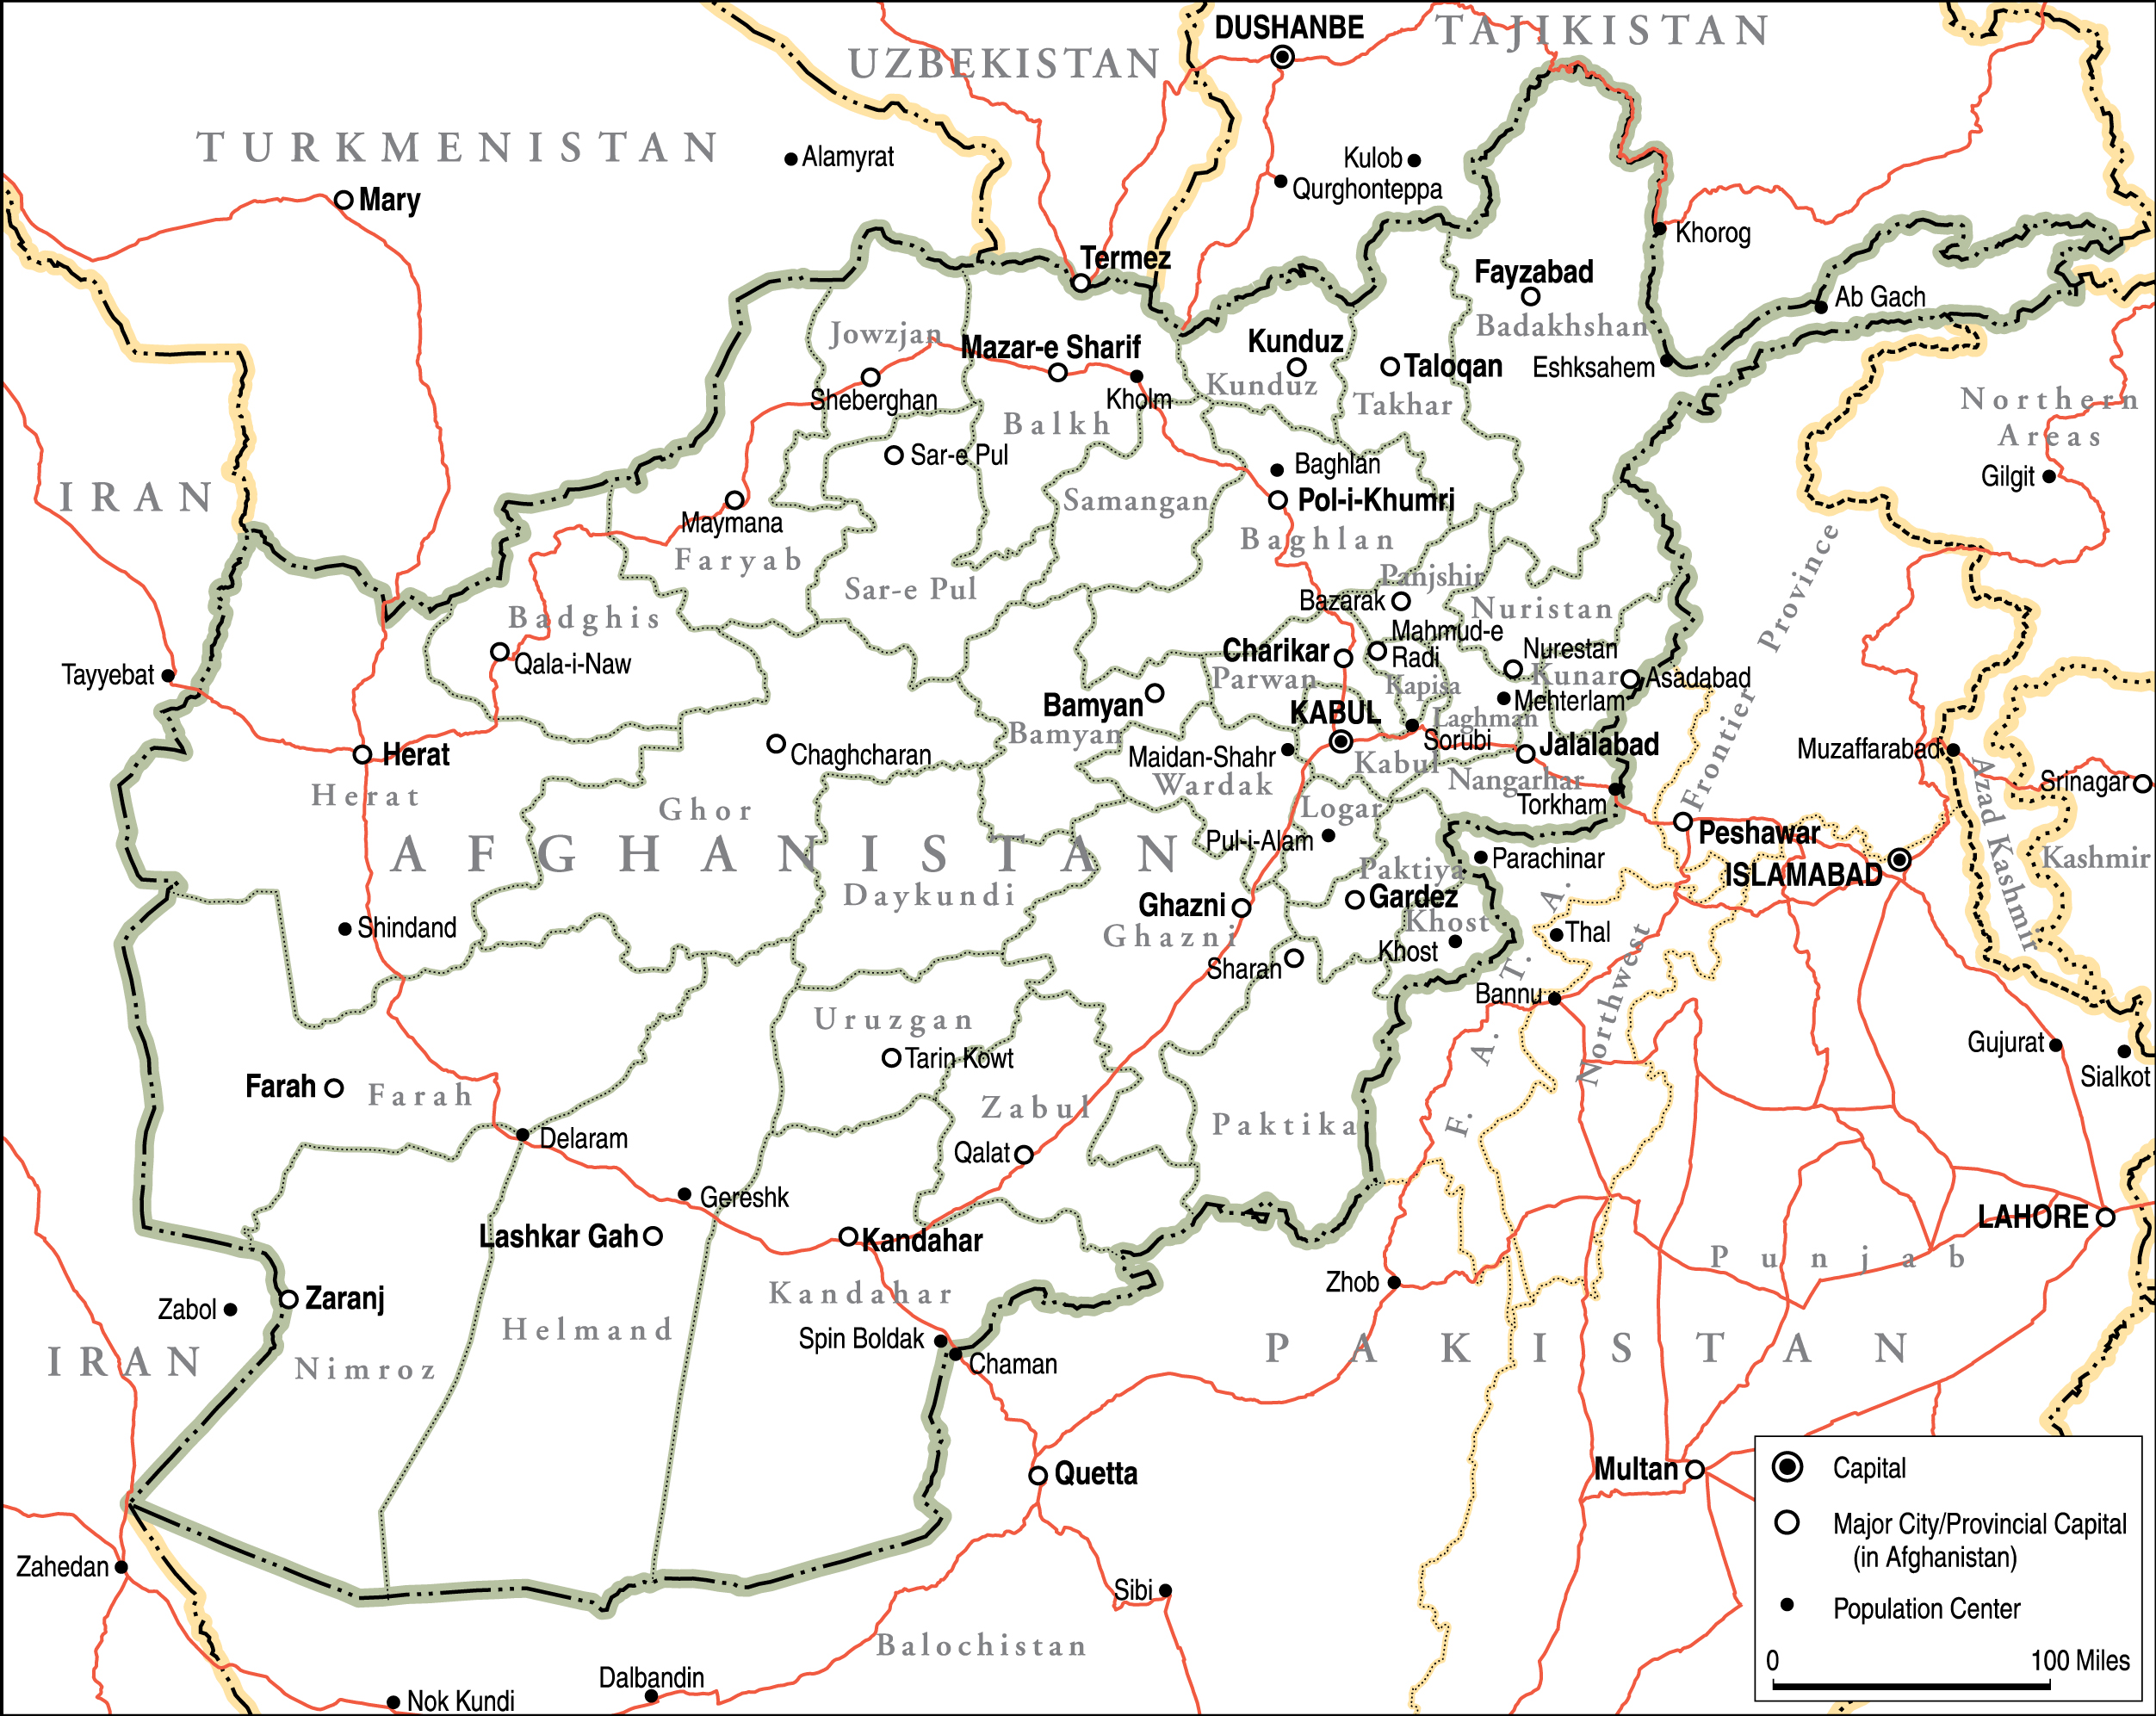 Afghanistan Political Map Institute for the Study of War